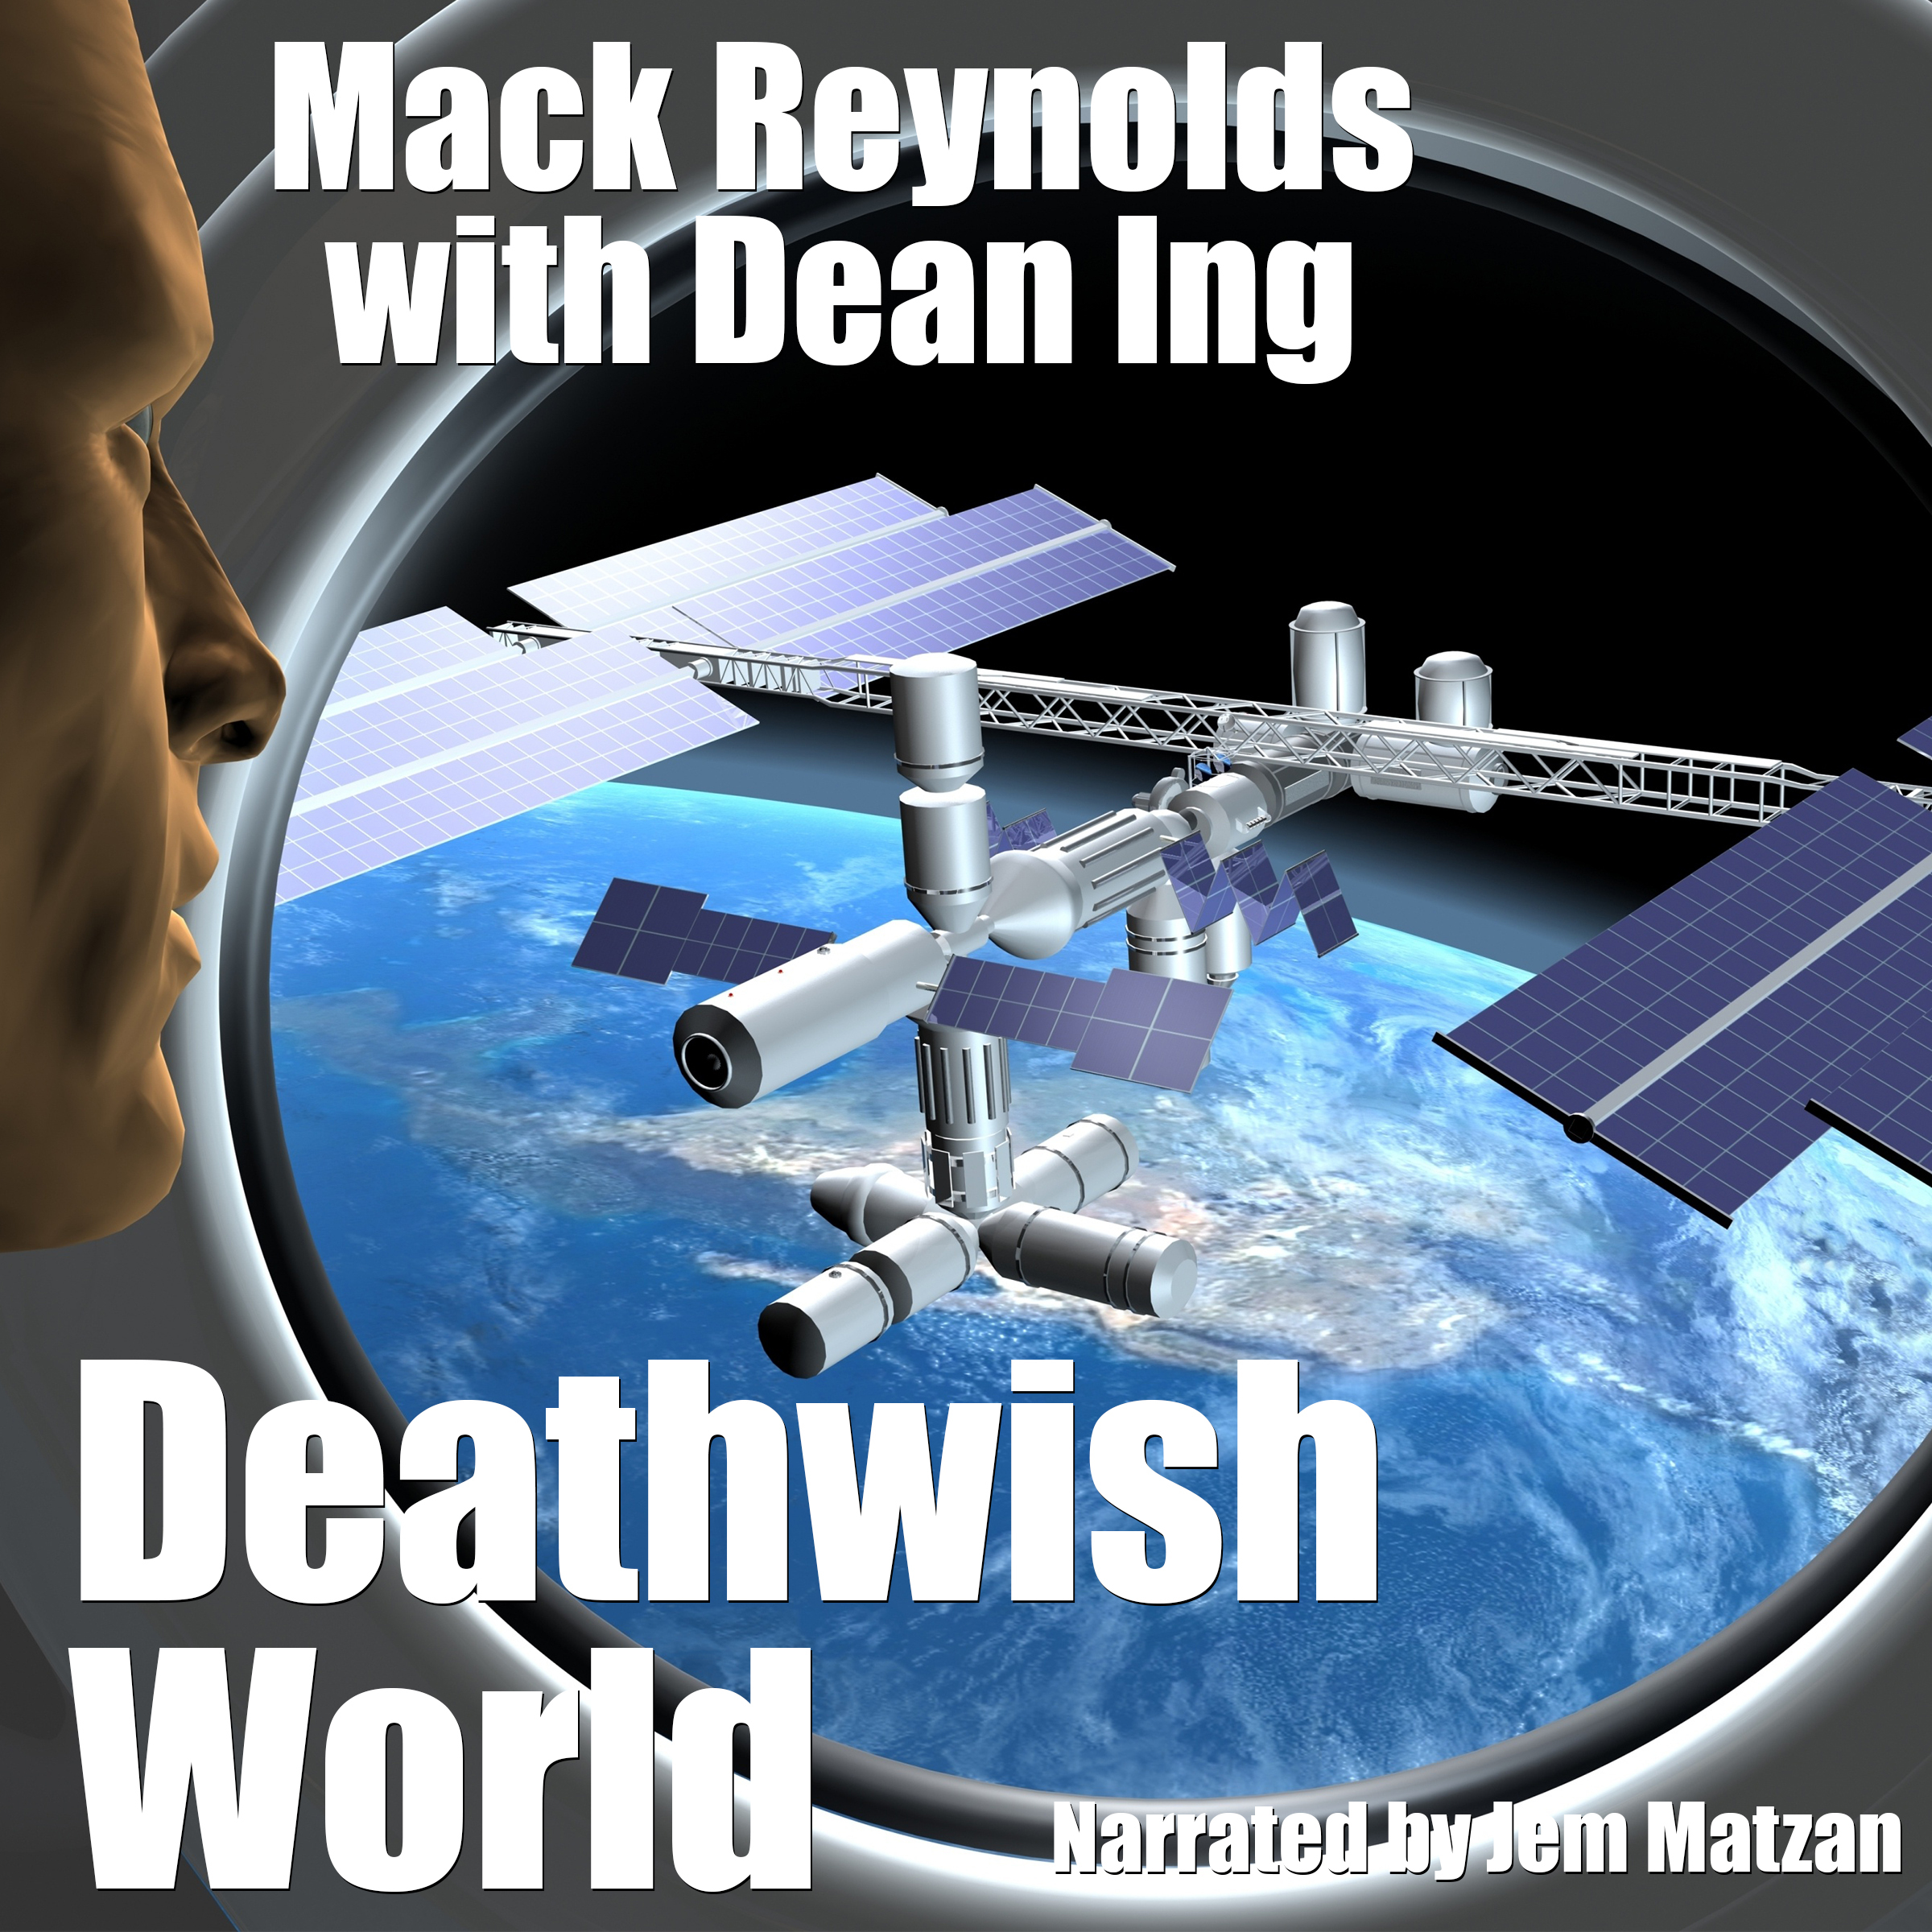 Deathwish World sci-fi cover art